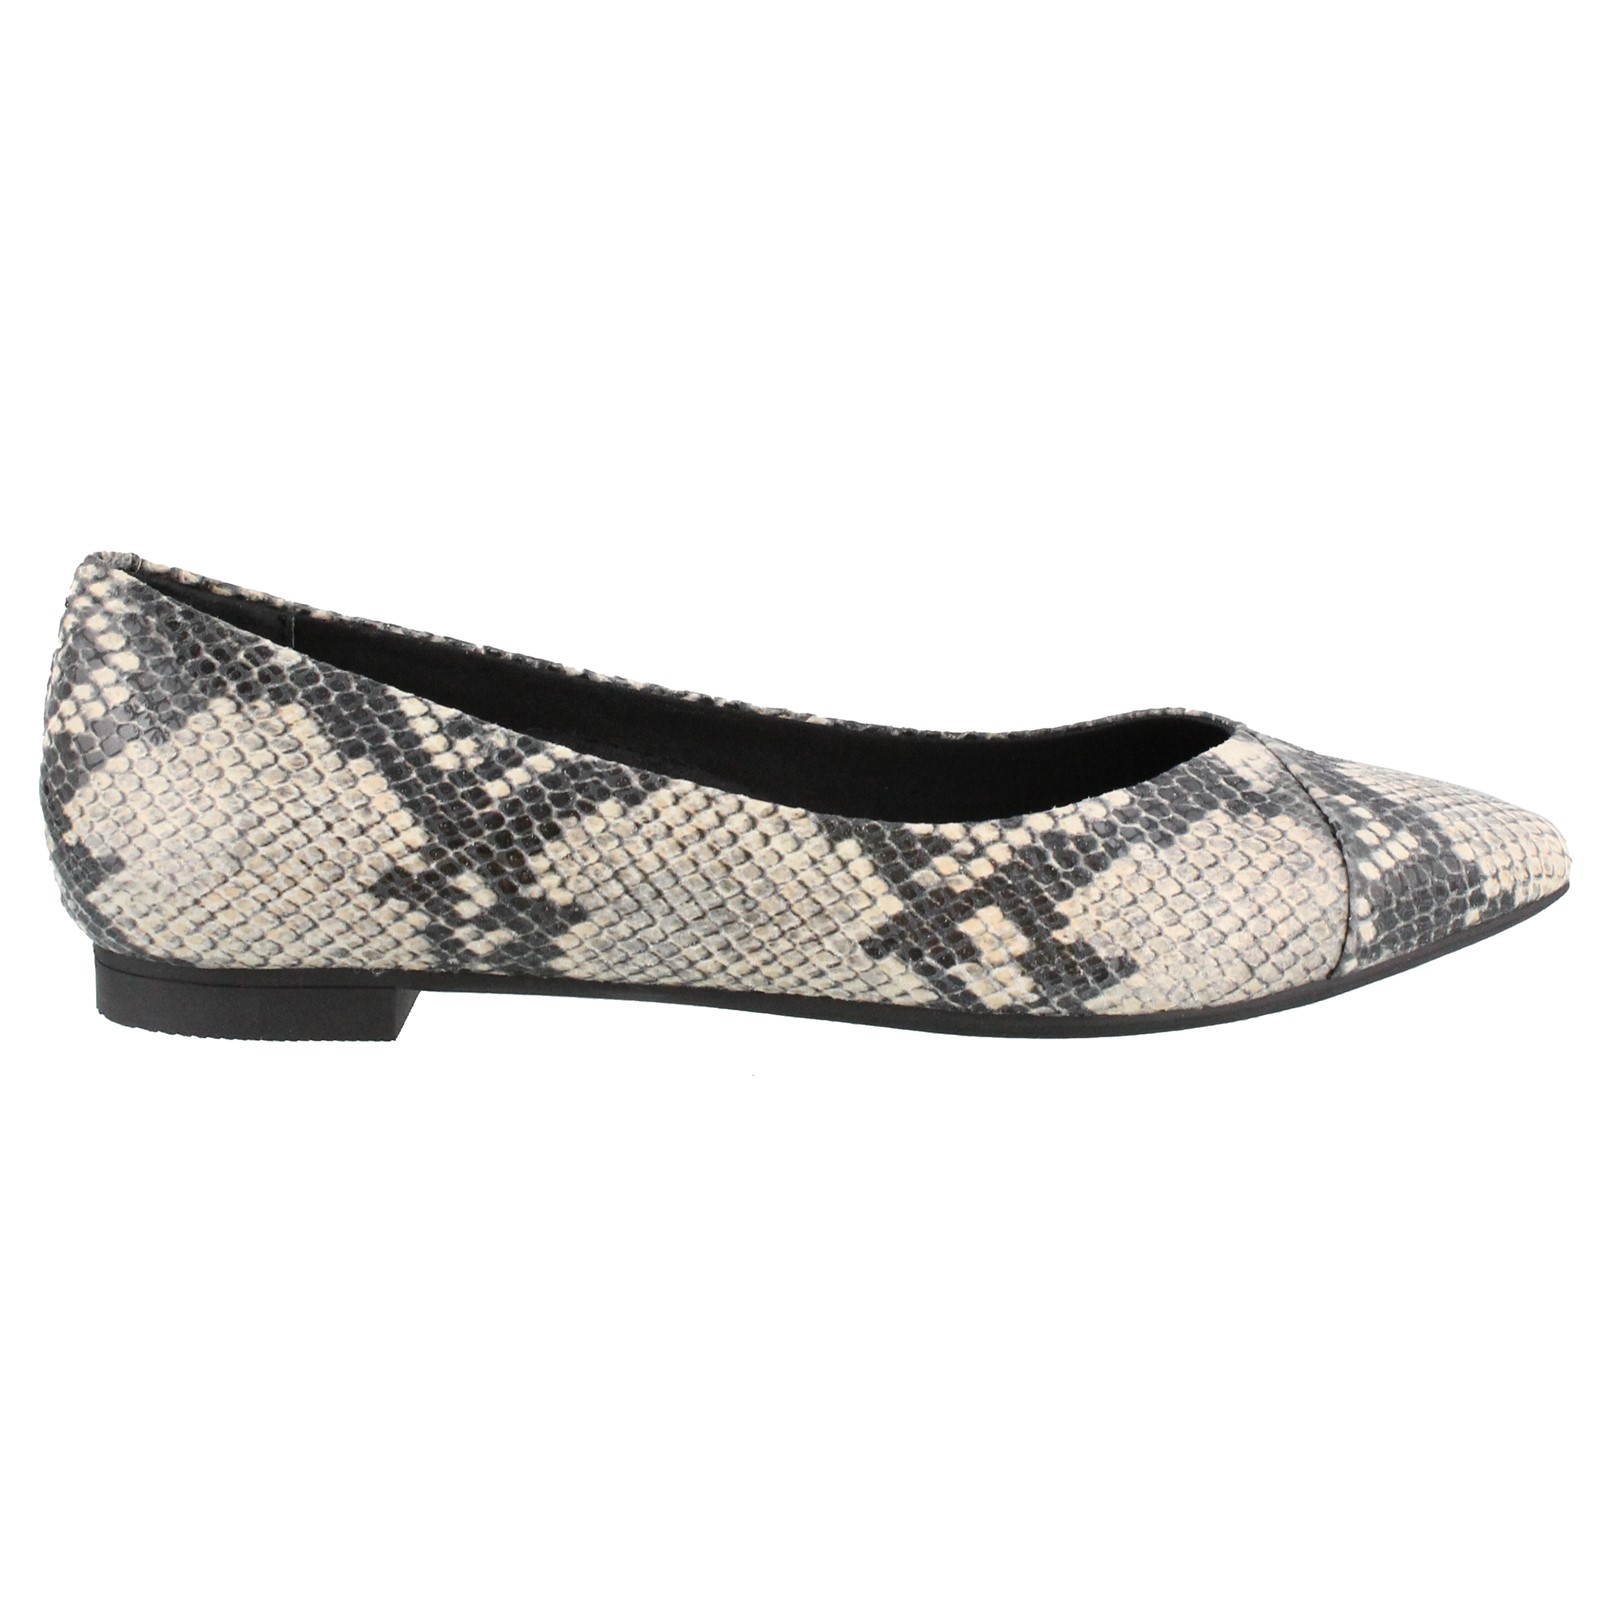 Women's Vionic, Gem Caballo Slip on Flat